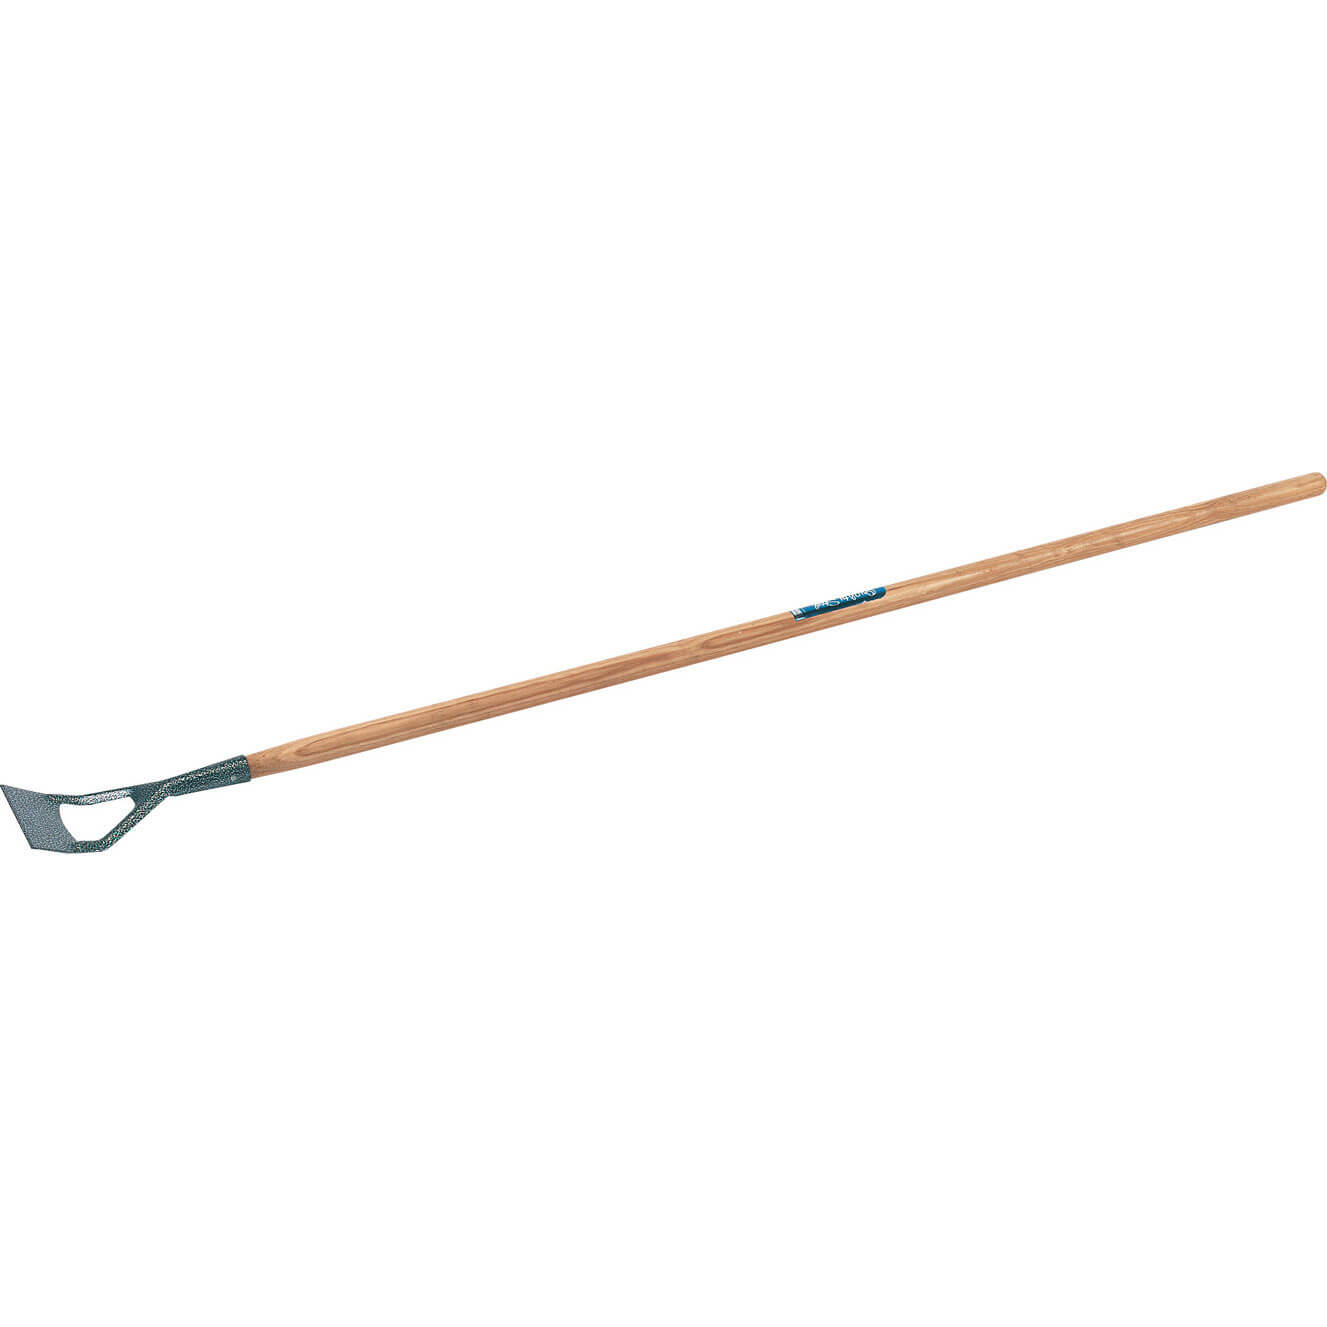 Image of Draper Carbon Steel Dutch Hoe Ash Handle